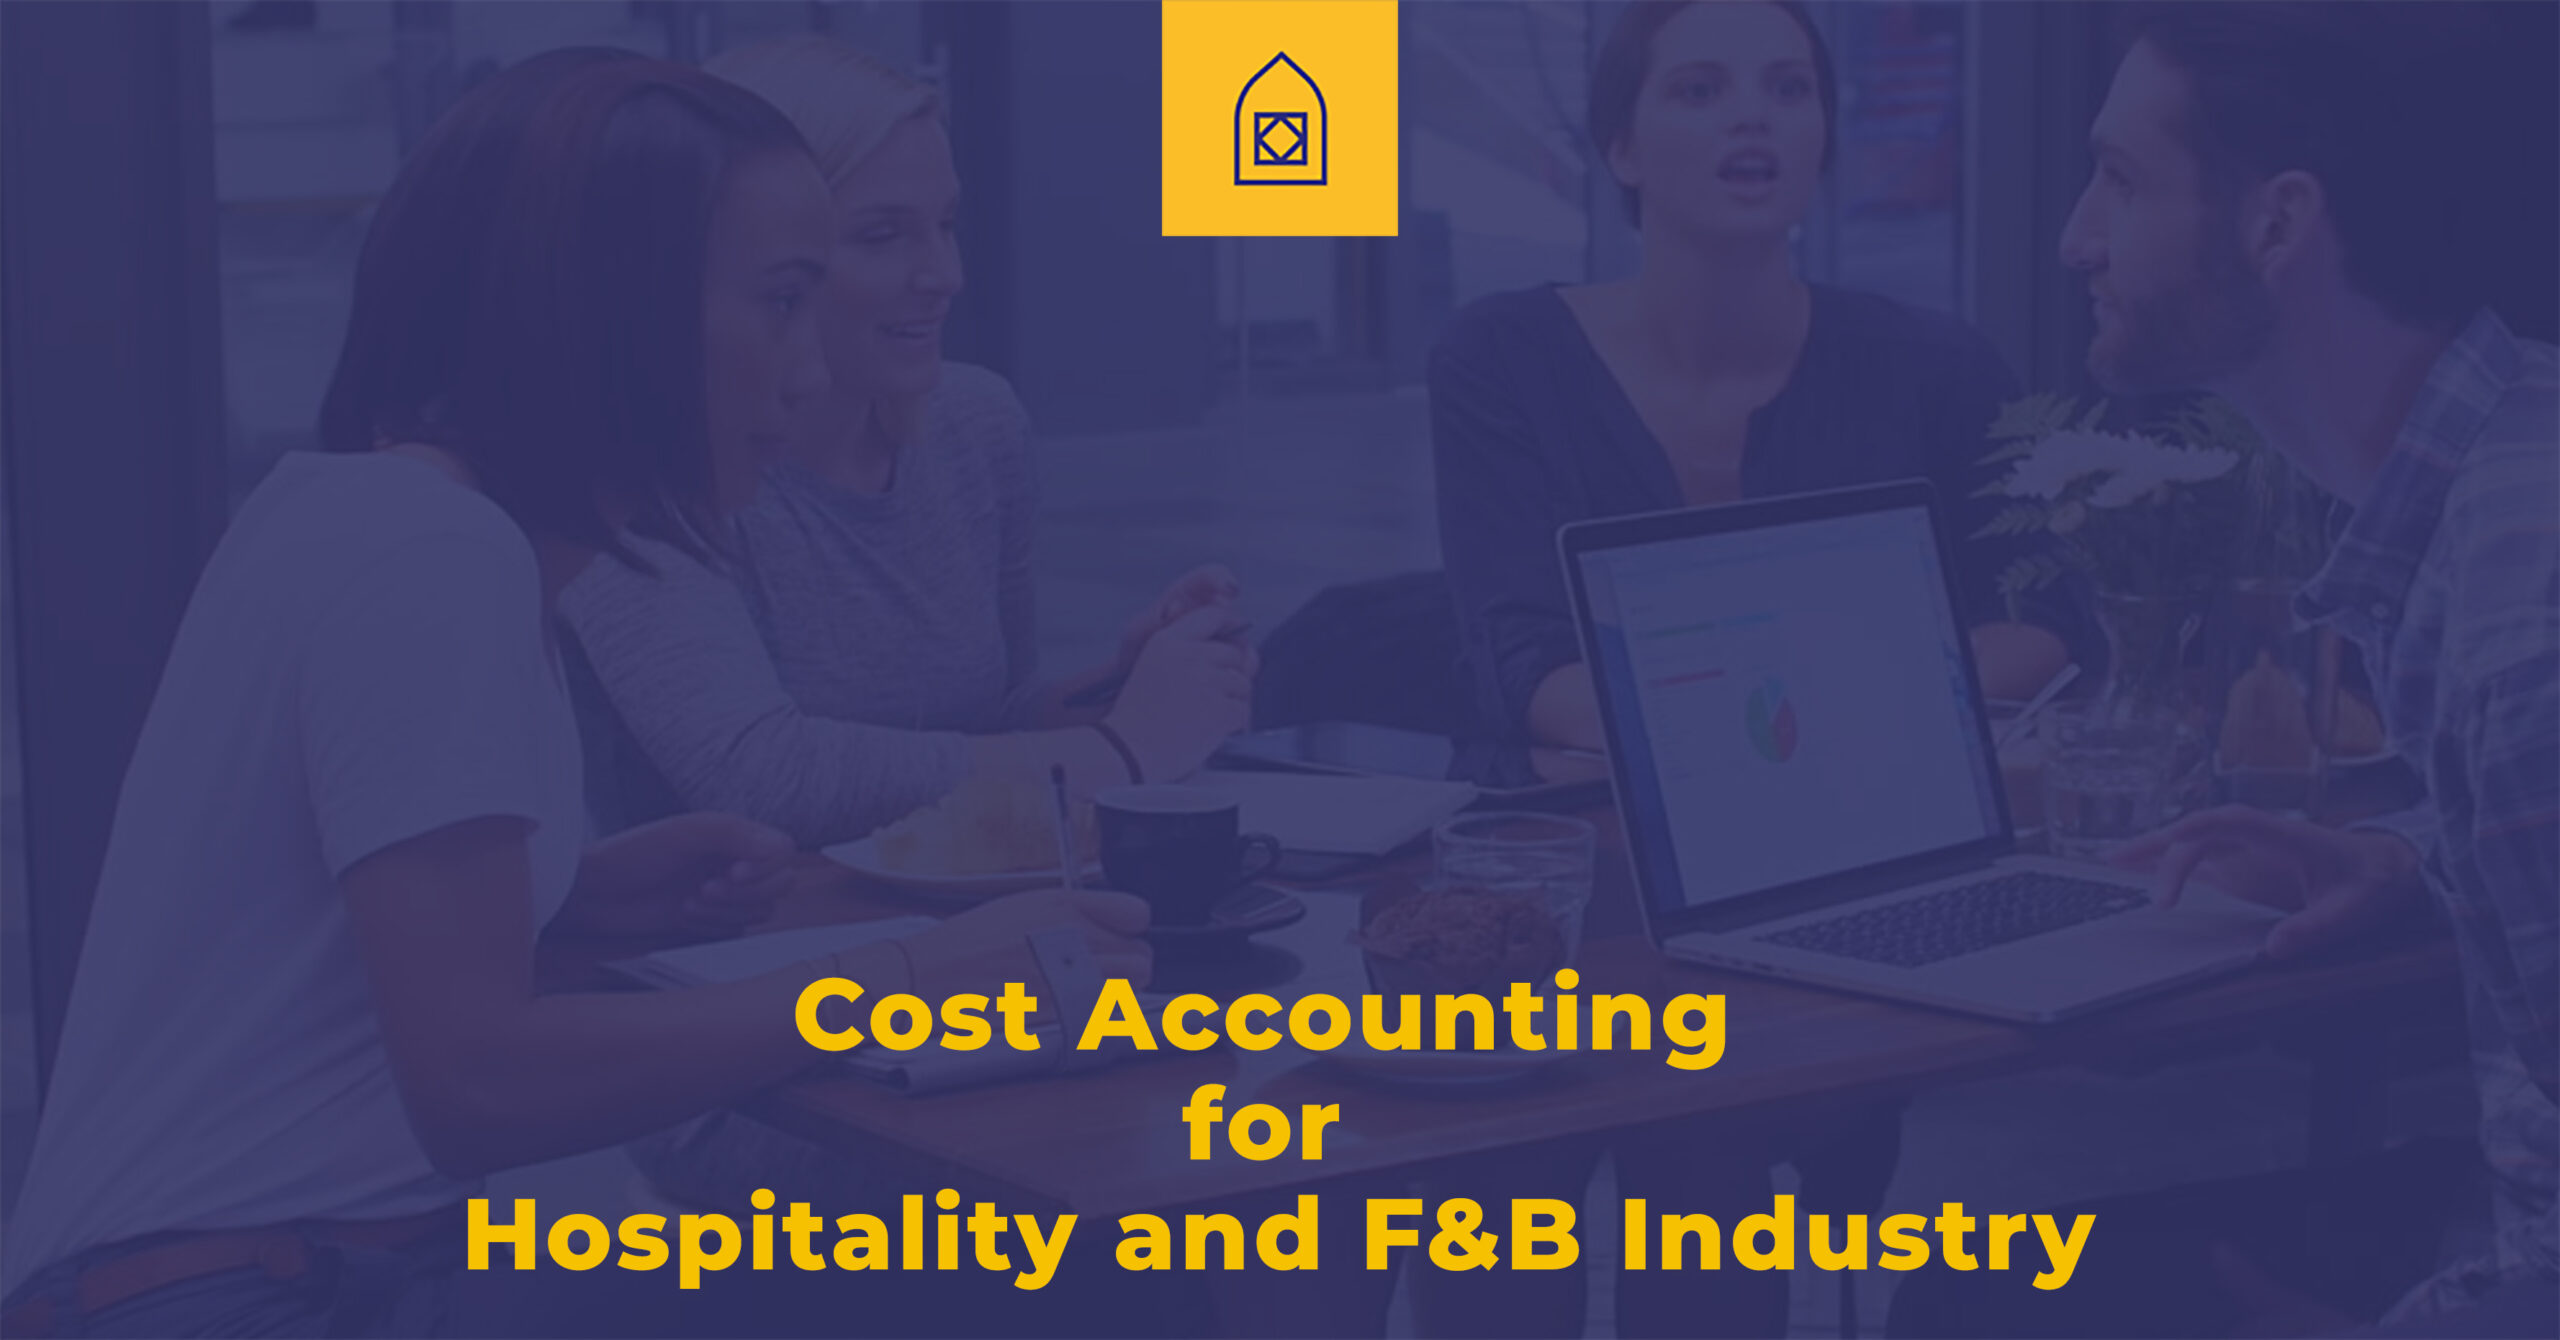 Cost Accounting for Hospitality and F&B industry